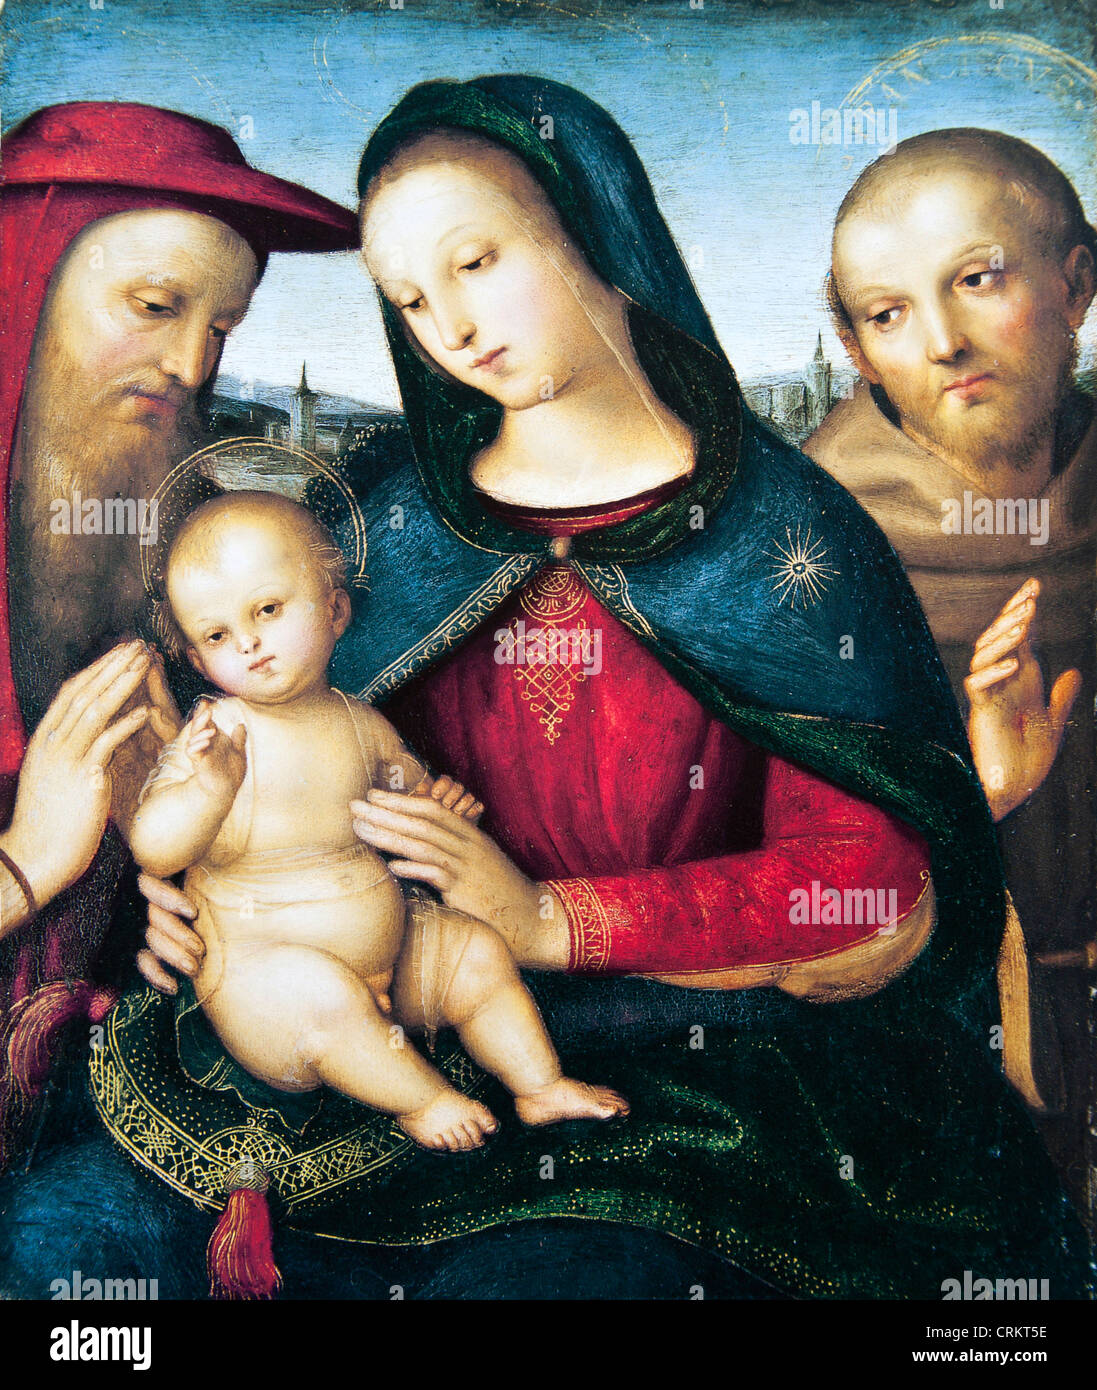 The Virgin and Child with Saints Jerome and Francis - Raphael - Stock Image